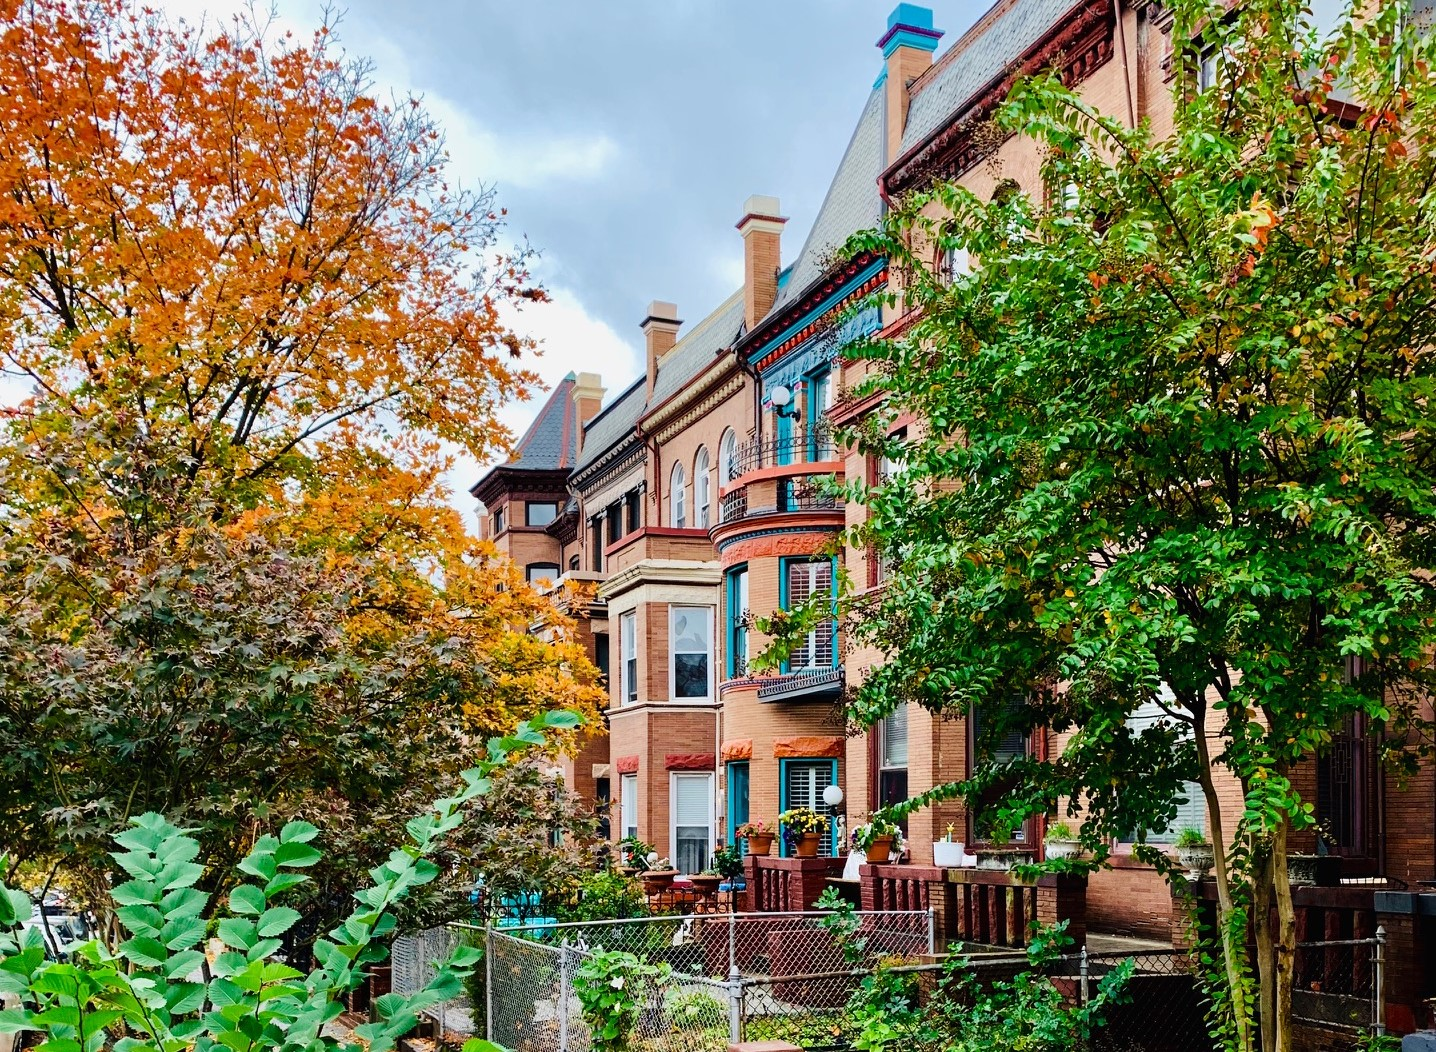 Washington, DC Historic Homes For Sale. 1st St in Bloomingdale. Artyom Shmatko Luxury Real Estate Agent